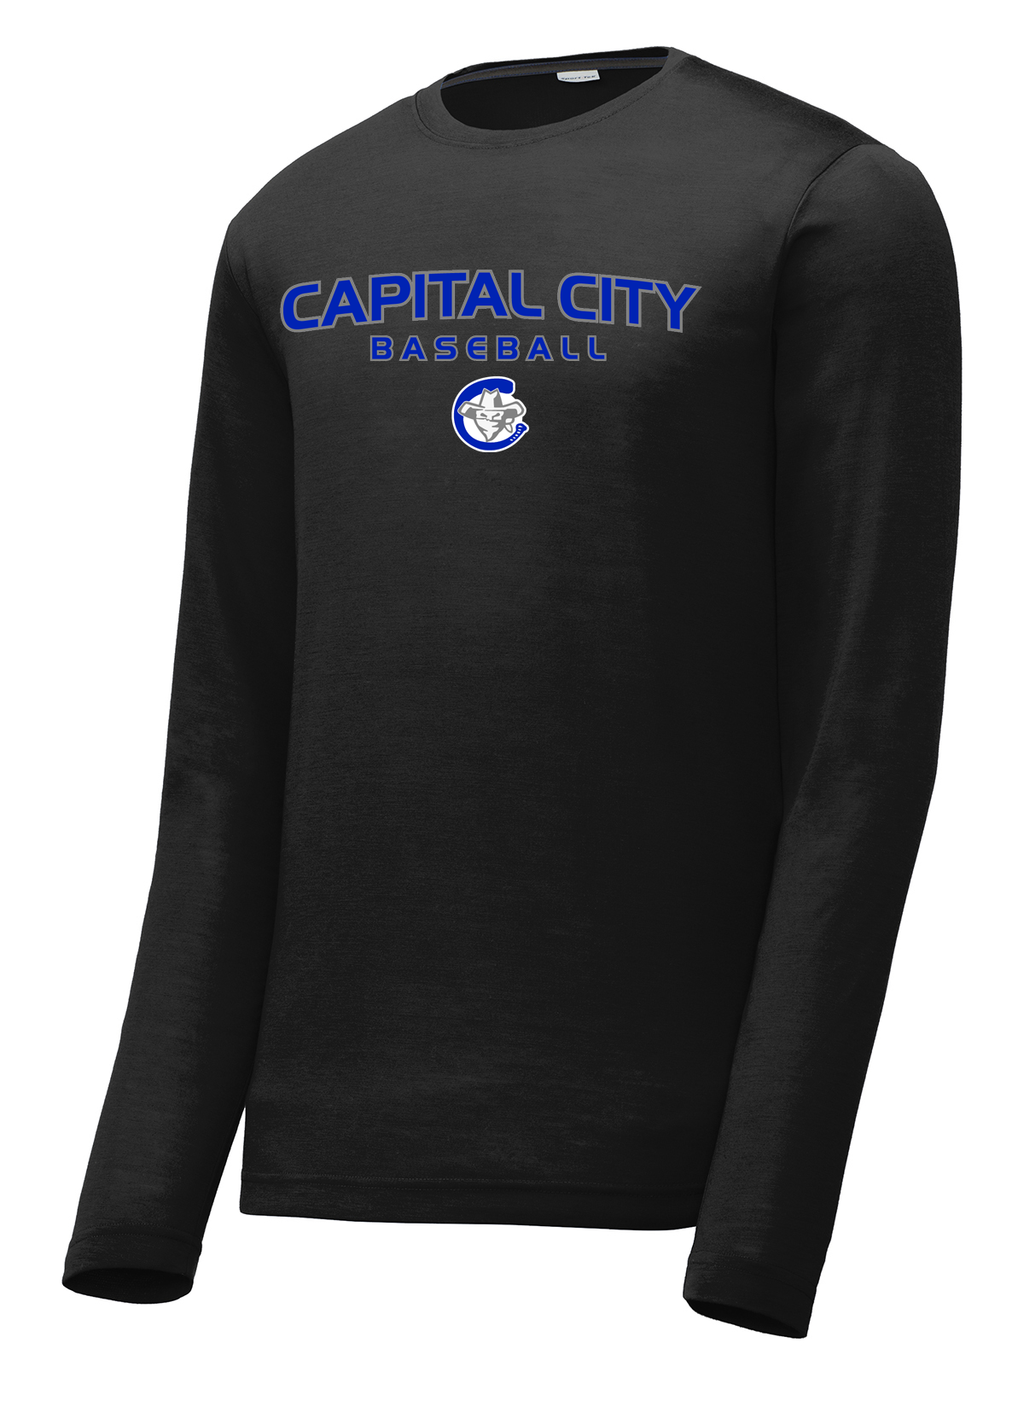 Capital City Baseball  Long Sleeve CottonTouch Performance Shirt